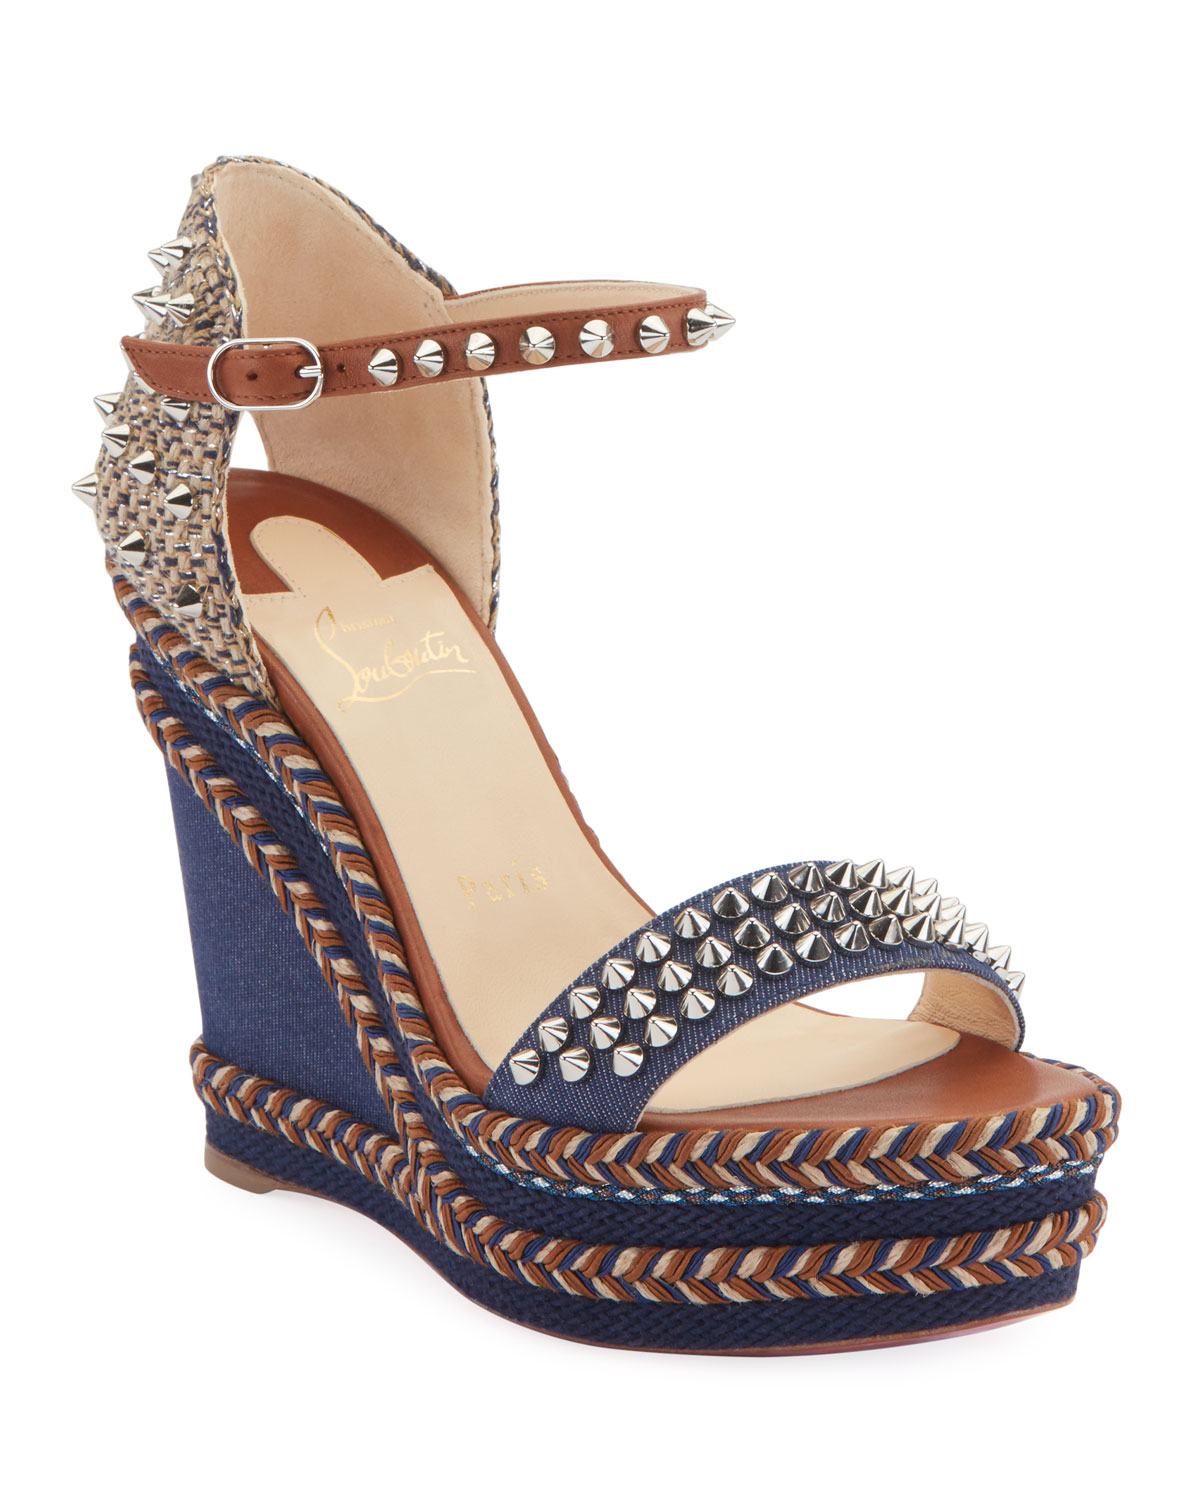 bed9190a43f8 Christian LouboutinMadmonica 120mm Spiked Denim Wedge Red Sole Sandals